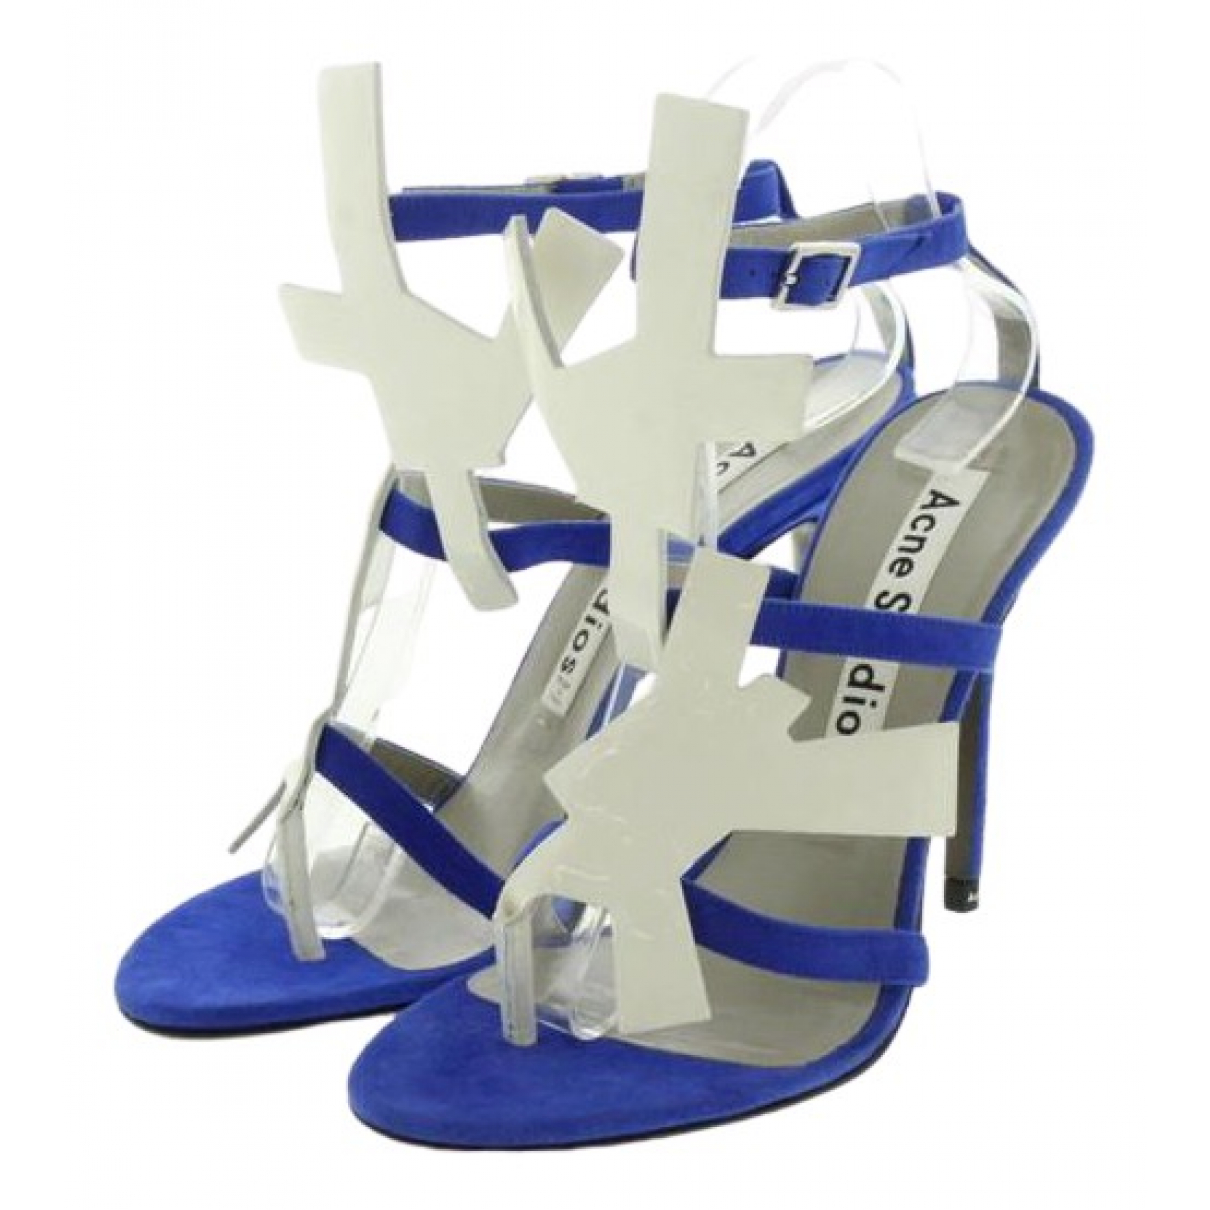 Acne Studios \N Blue Suede Sandals for Women 37 EU